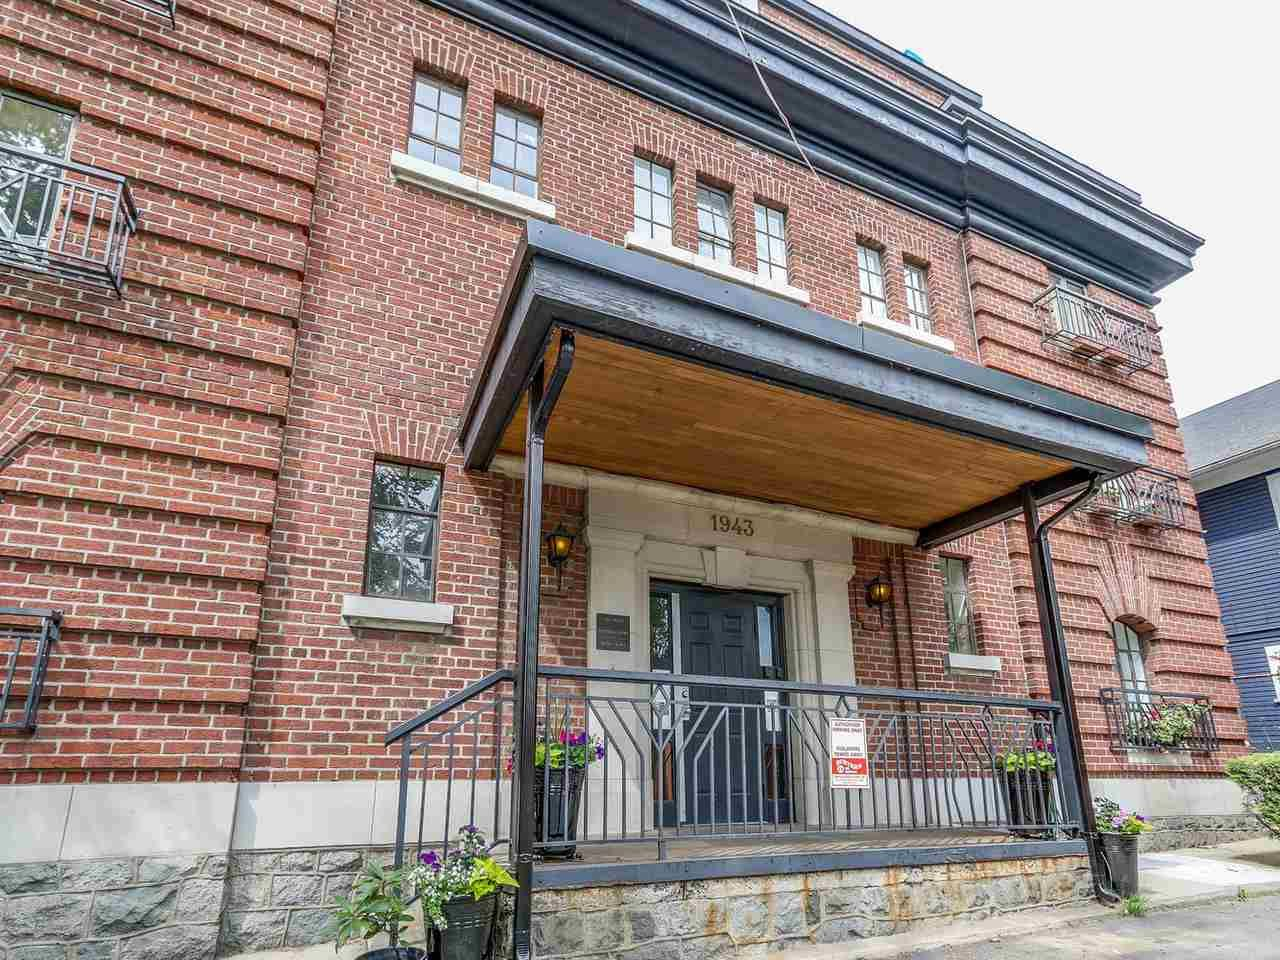 """Main Photo: 101 1943 E 1ST Avenue in Vancouver: Grandview VE Condo for sale in """"THE VAULT"""" (Vancouver East)  : MLS®# R2075502"""